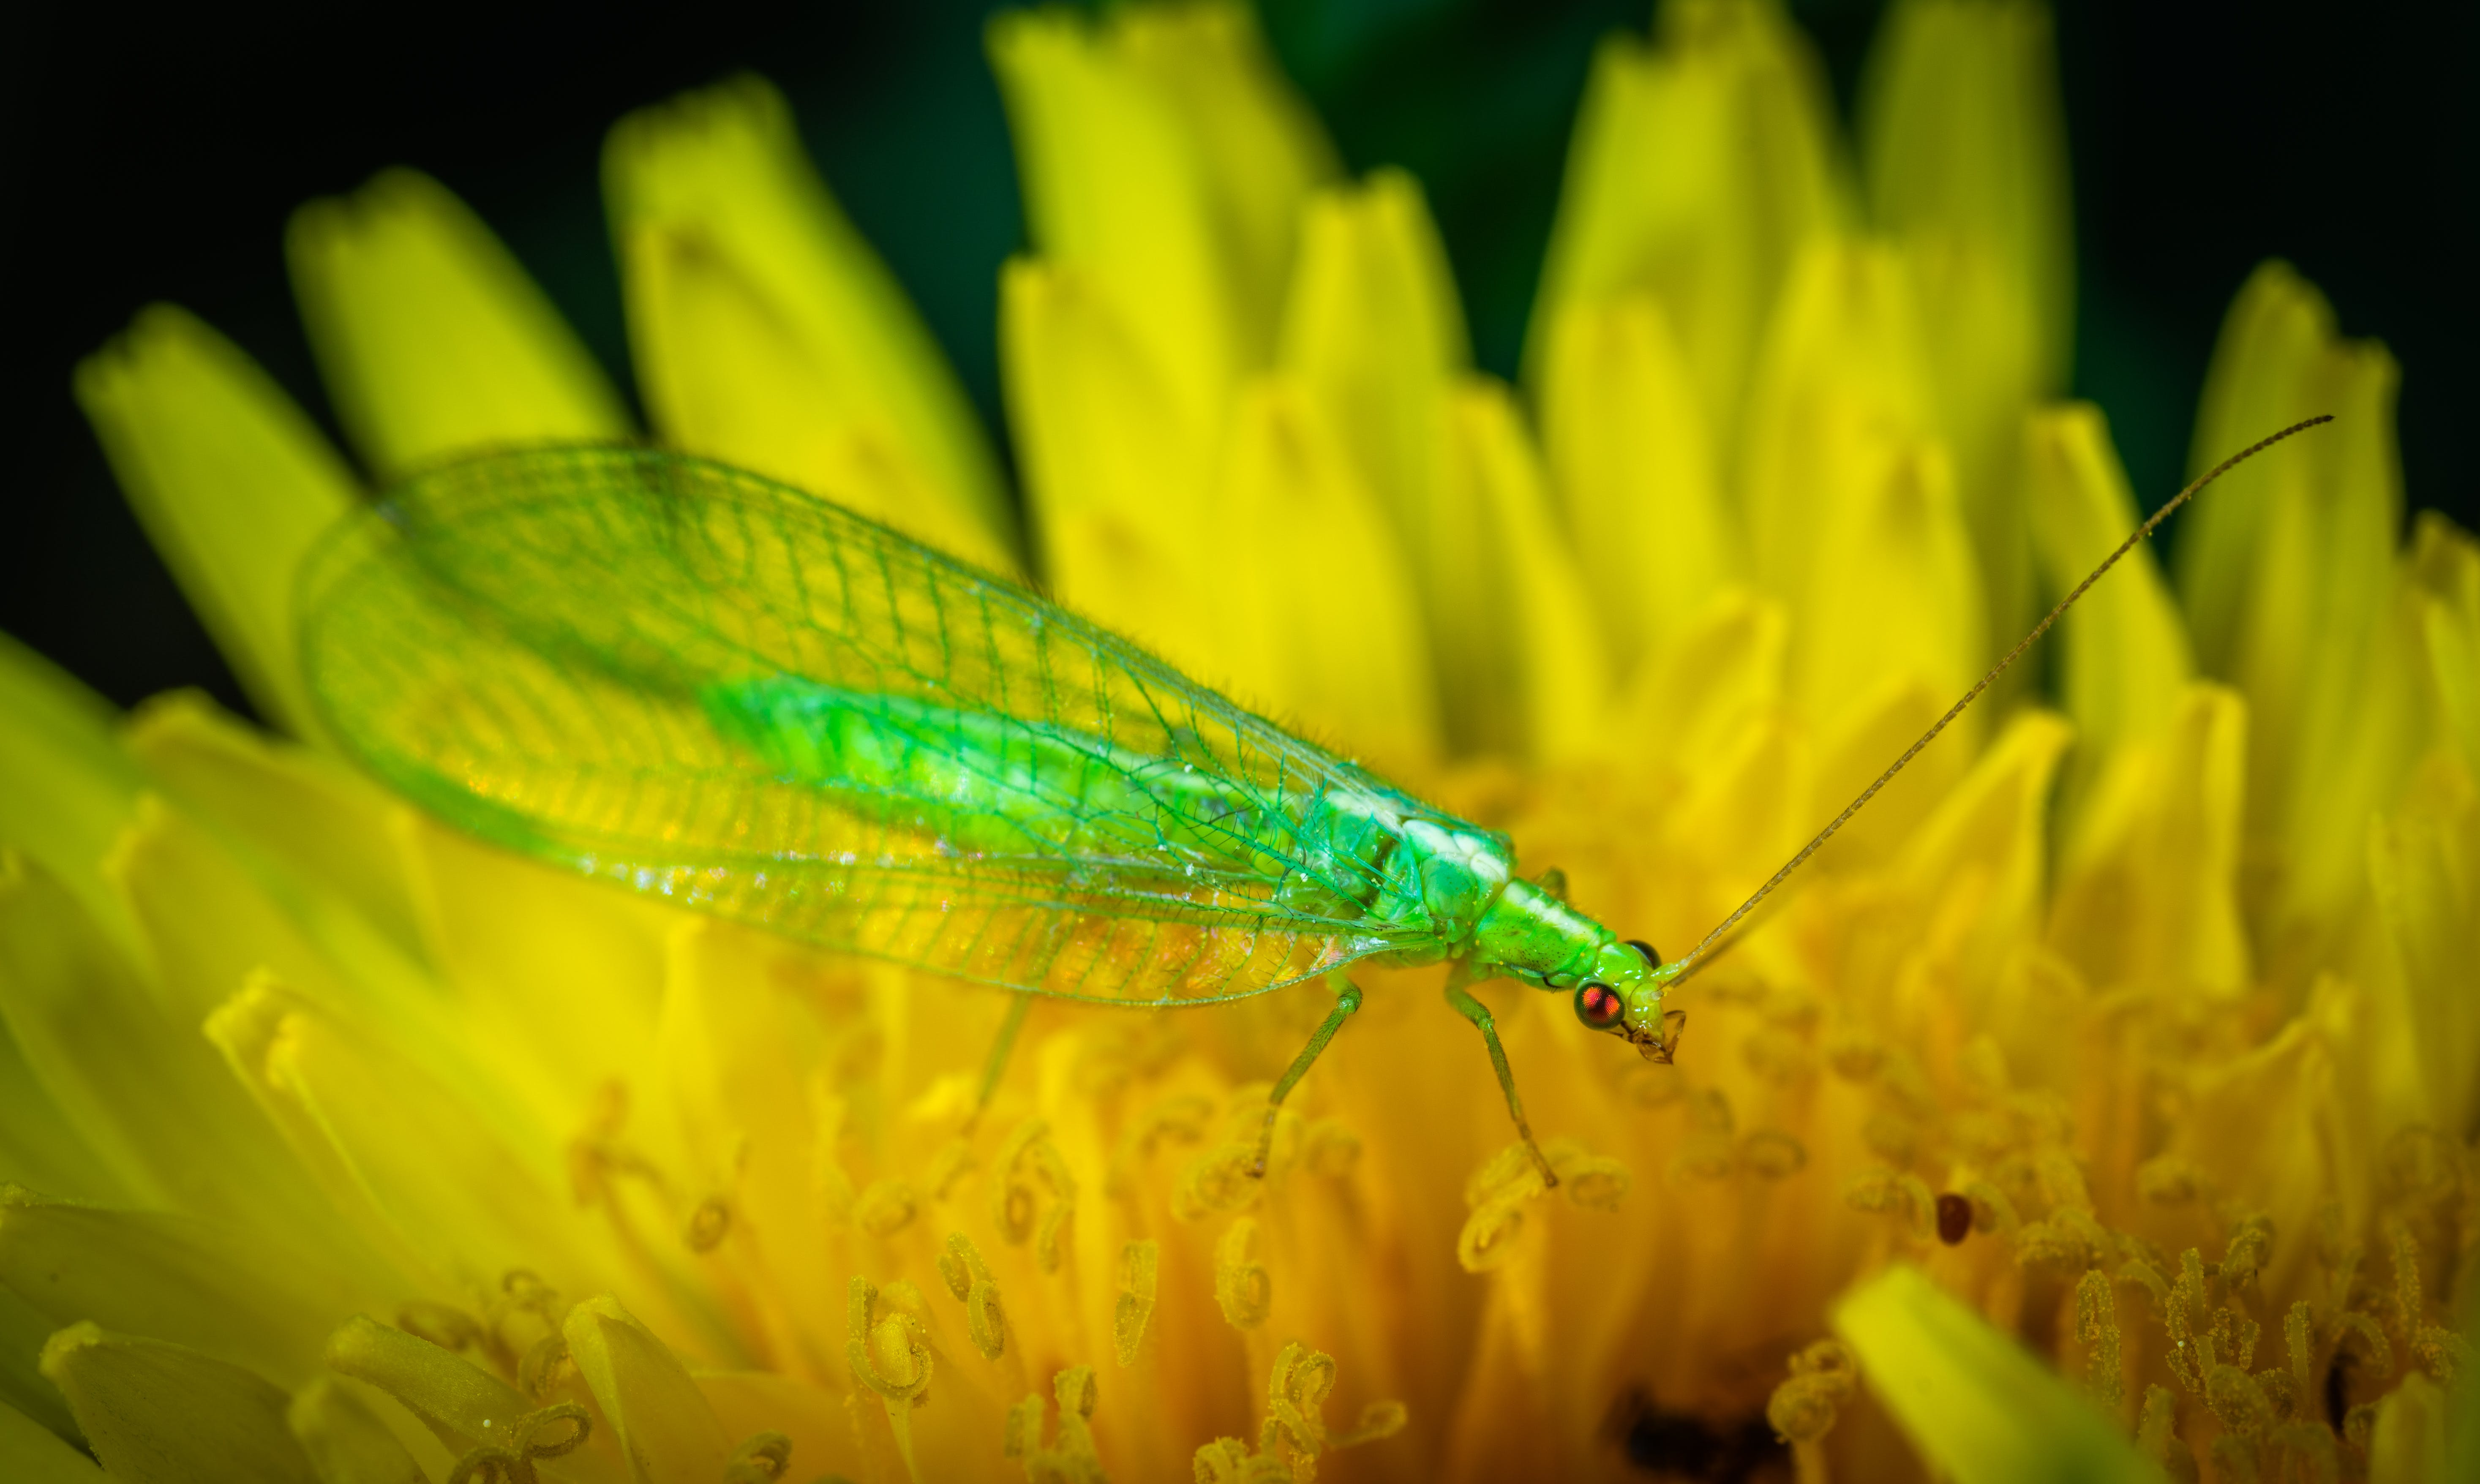 Green Dobsonfly Perched on Yellow Flower